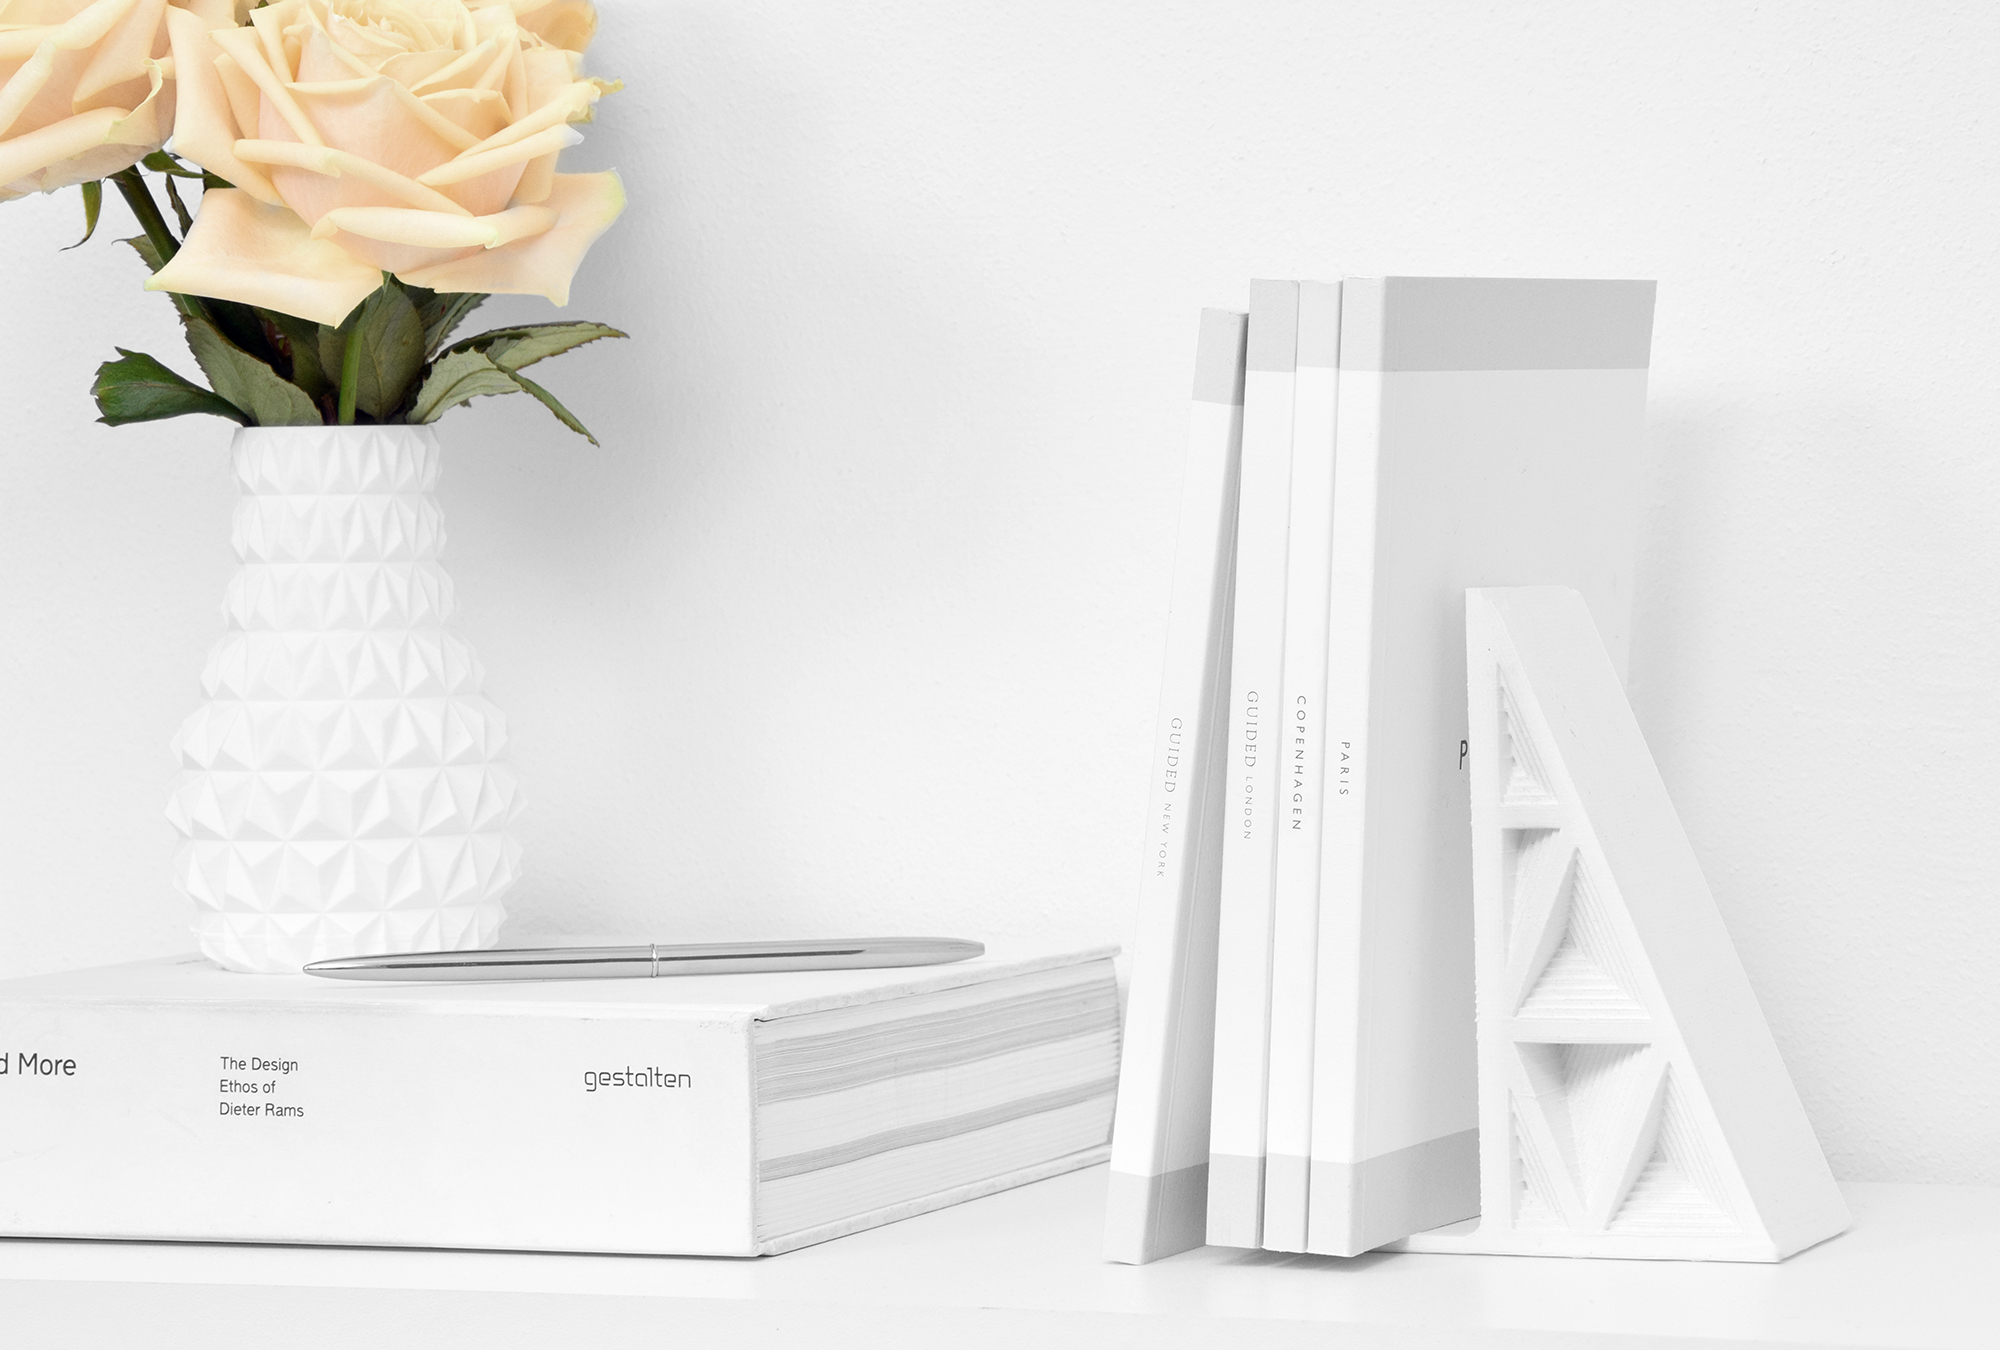 Cubify Triangle Bookend by Matthijs Kok